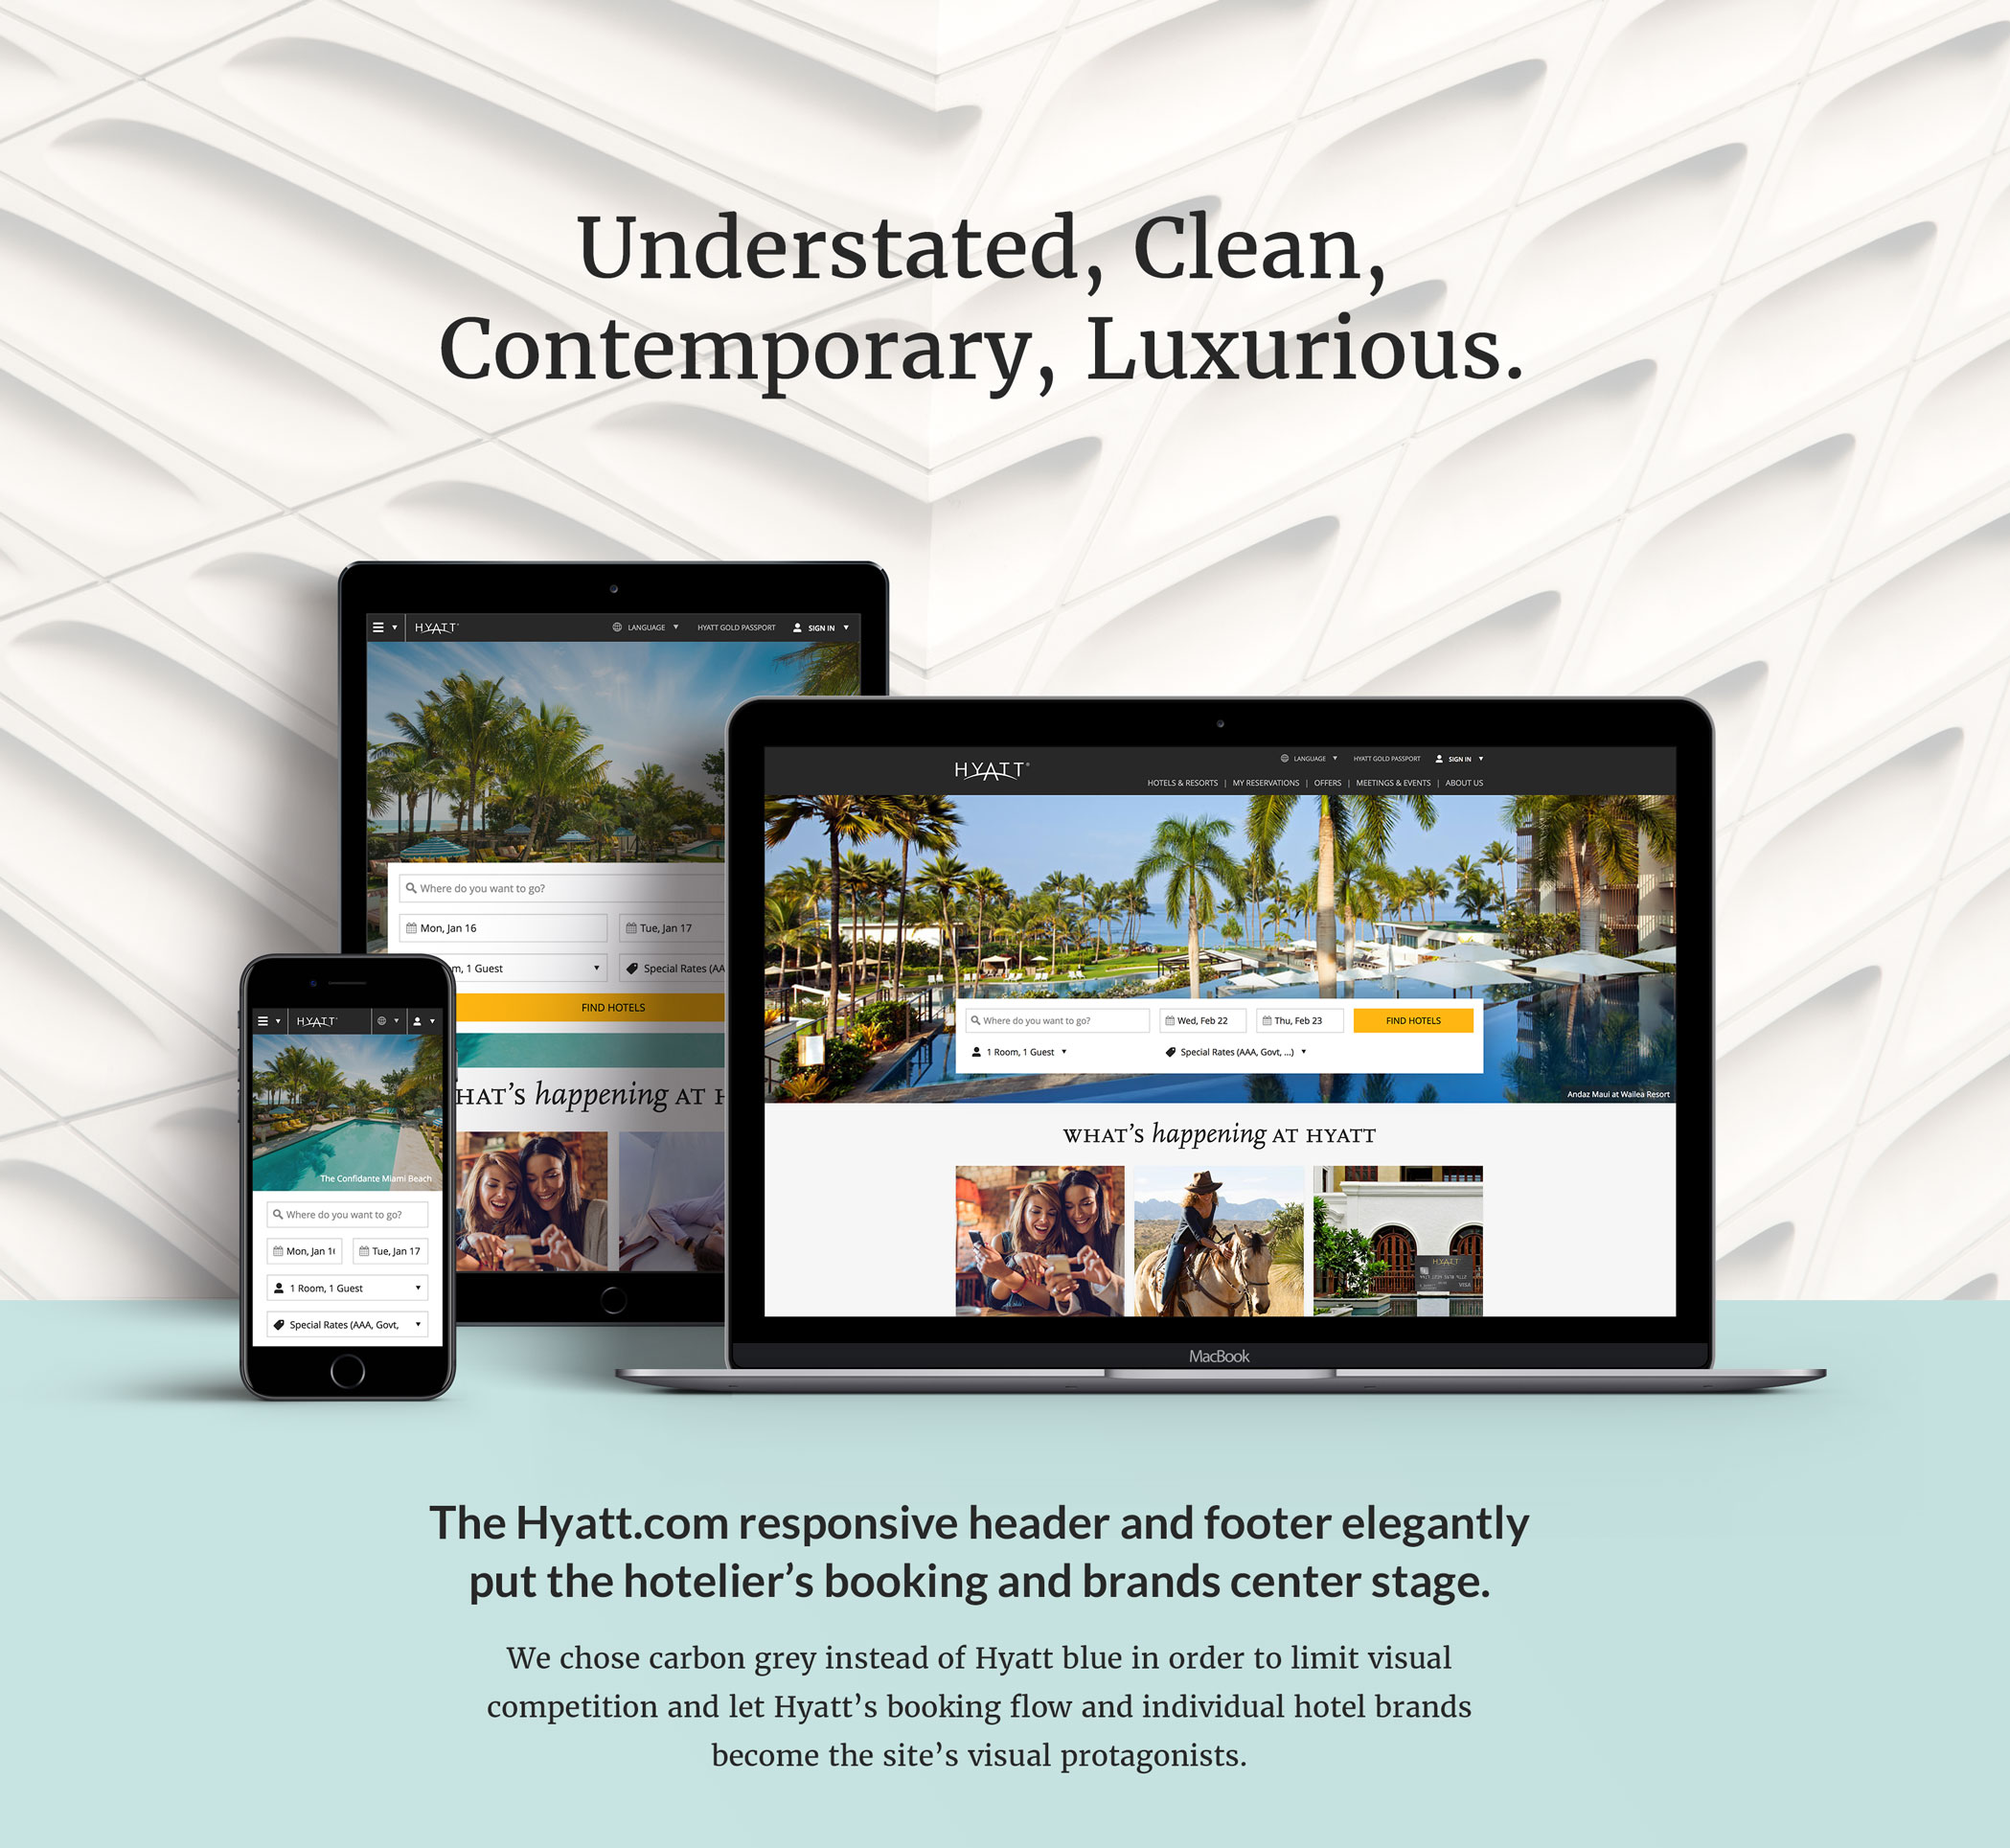 hyatt-responsive-navigation-showcase.jpg